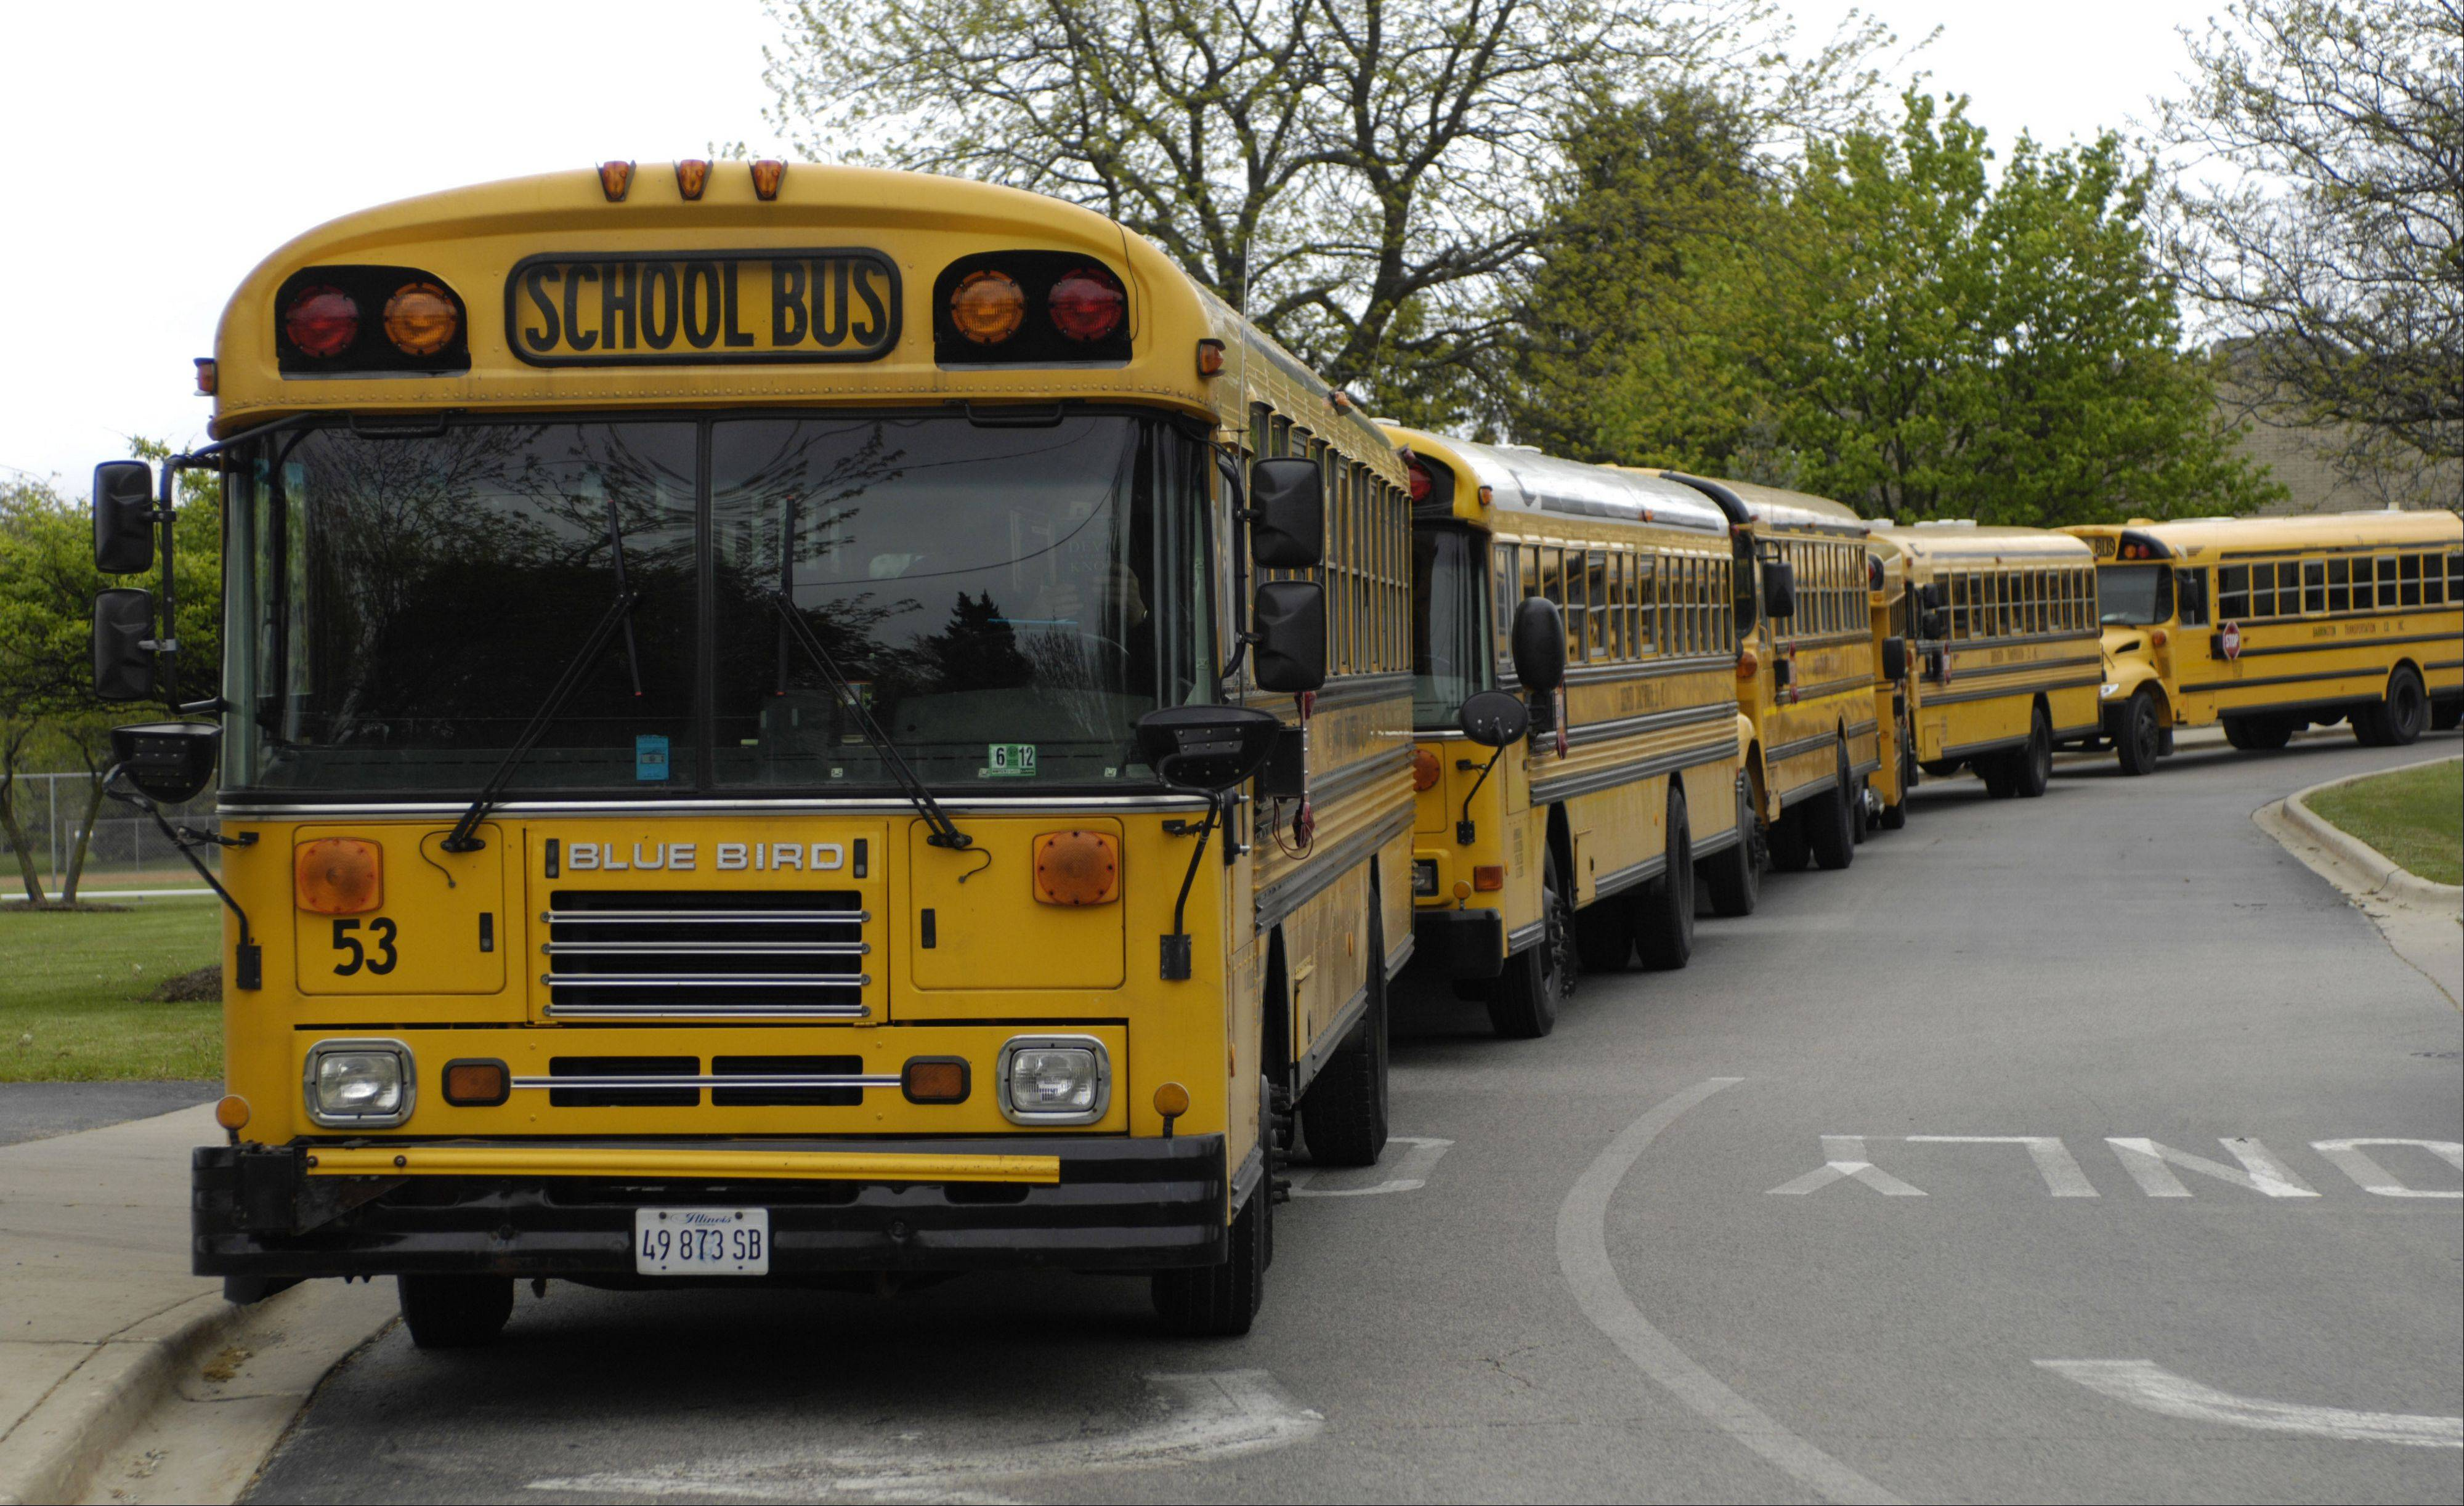 Buses line up before dismissal at Barrington Middle School Station campus Friday. Illinois is considering letting schools charge fees for busing students.